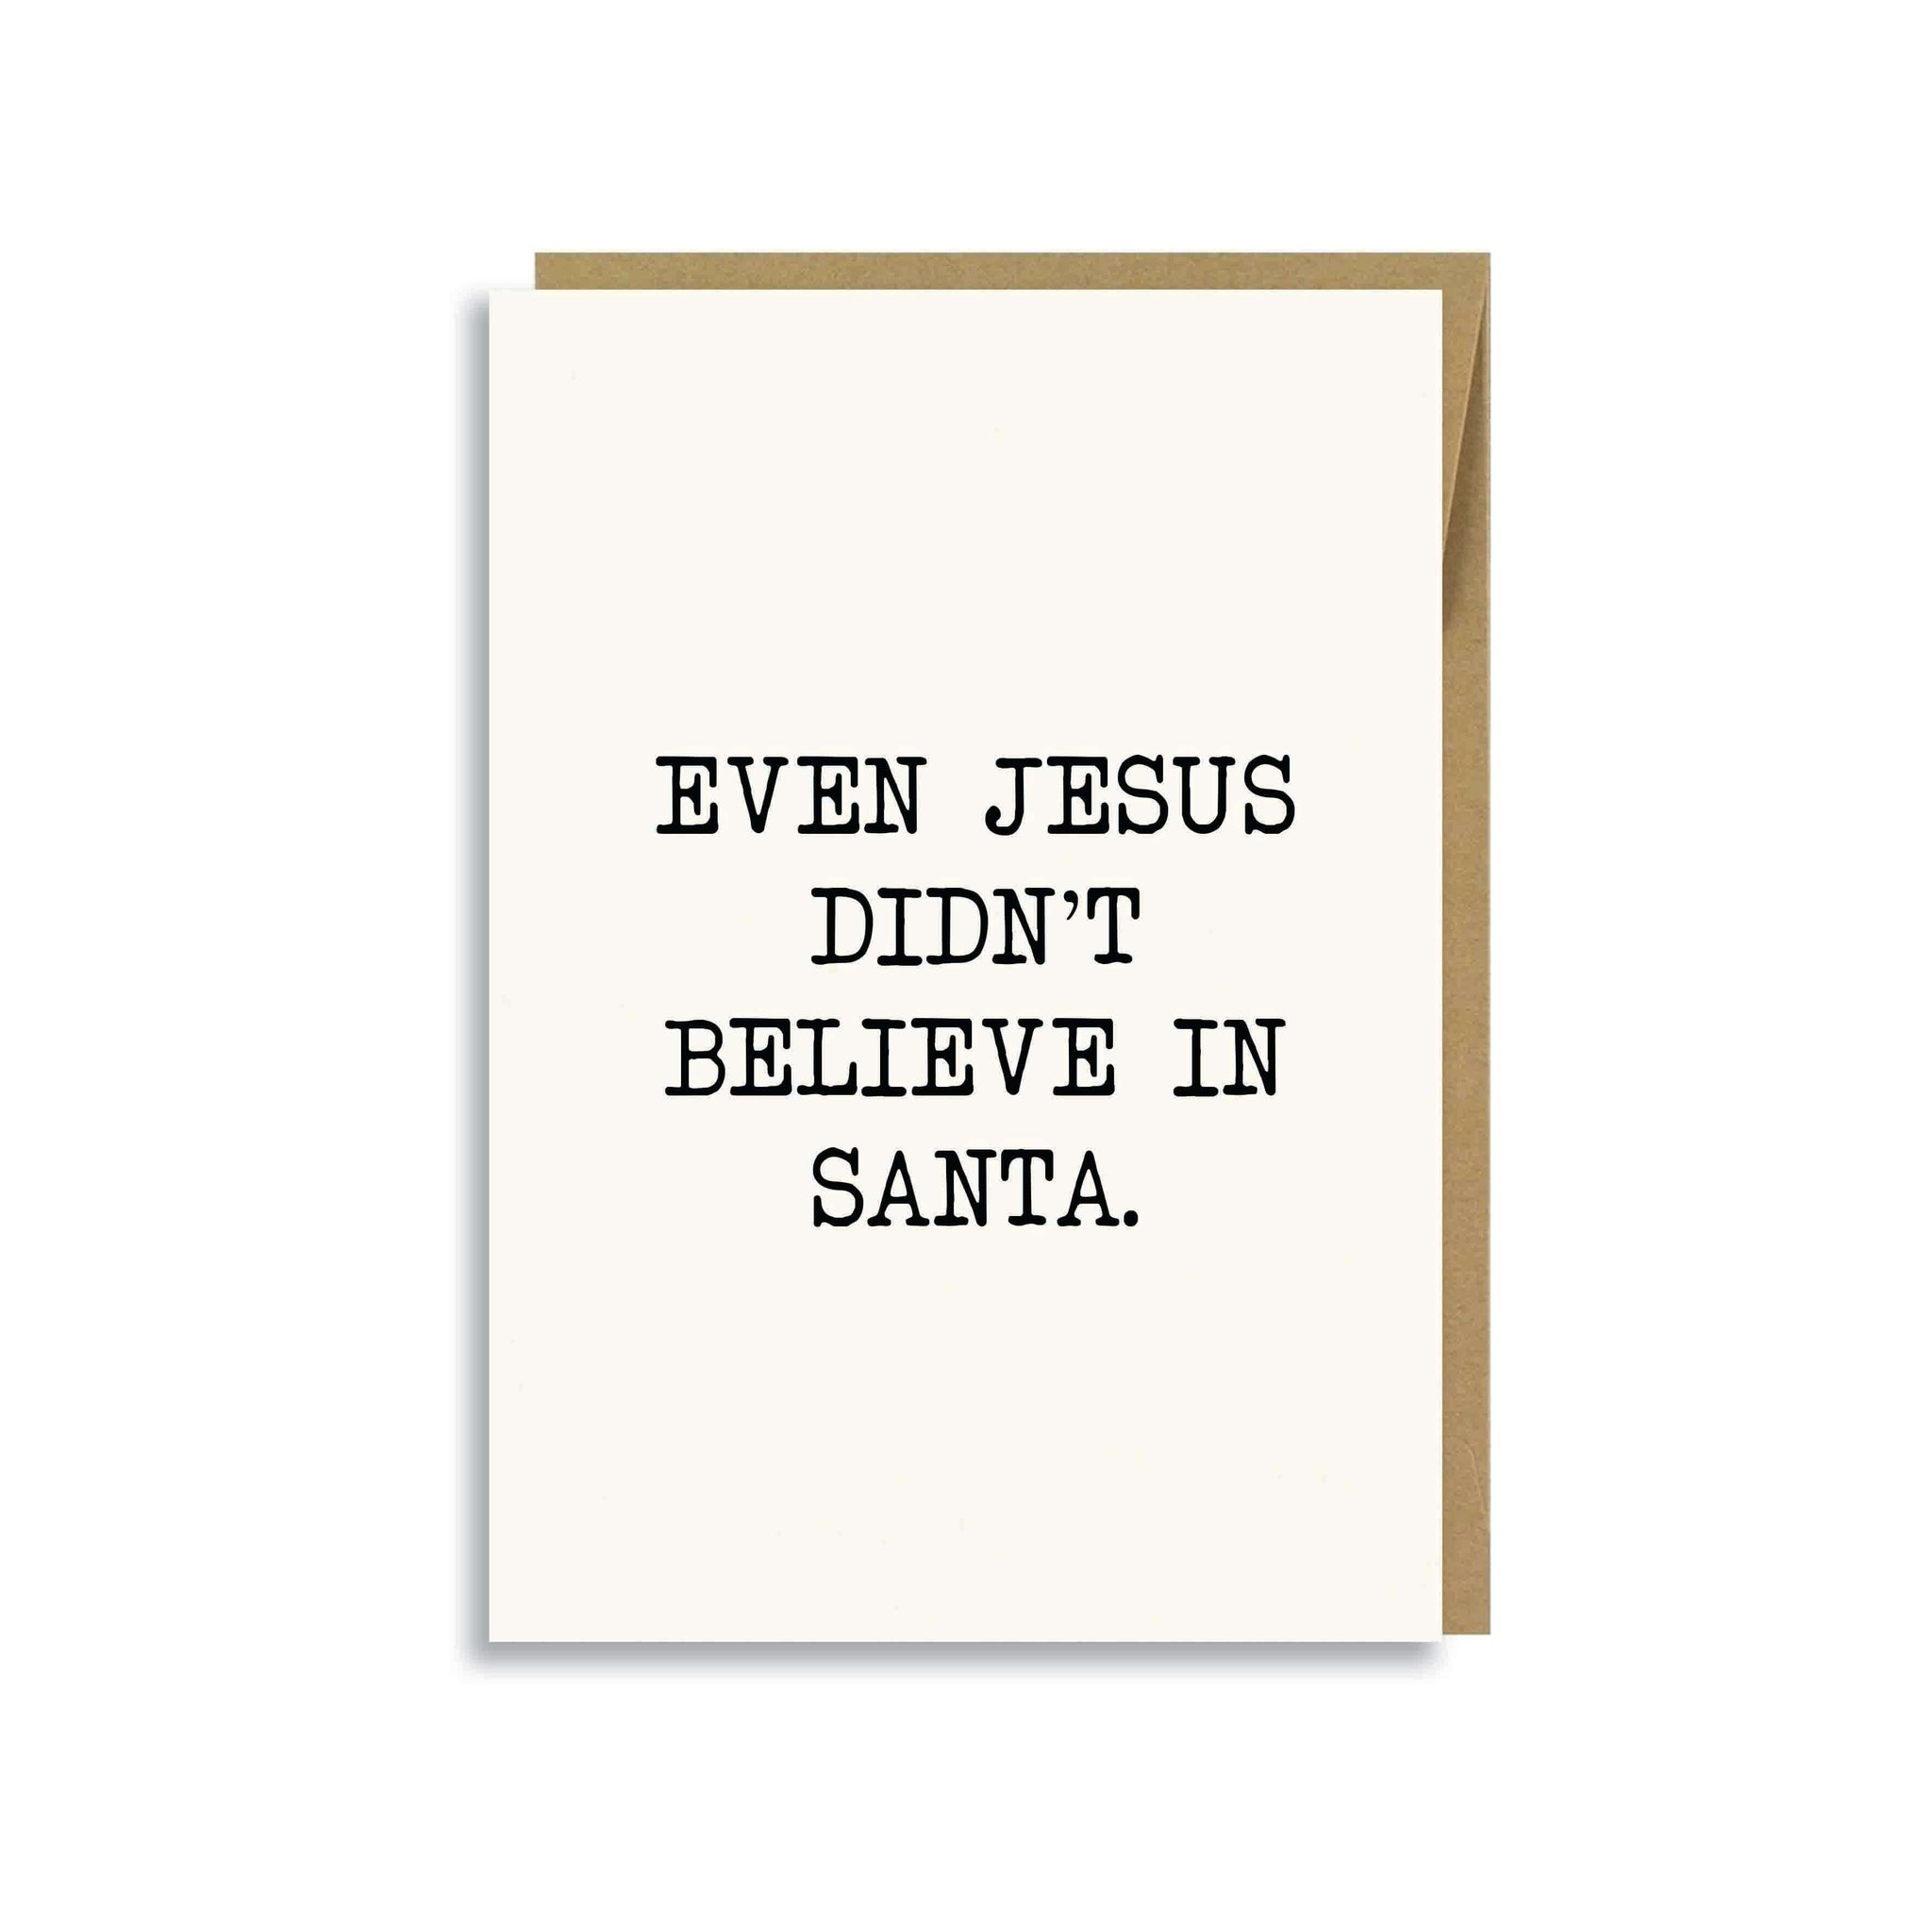 EVEN JESUS DIDN'T BELIEVE IN SANTA CARD